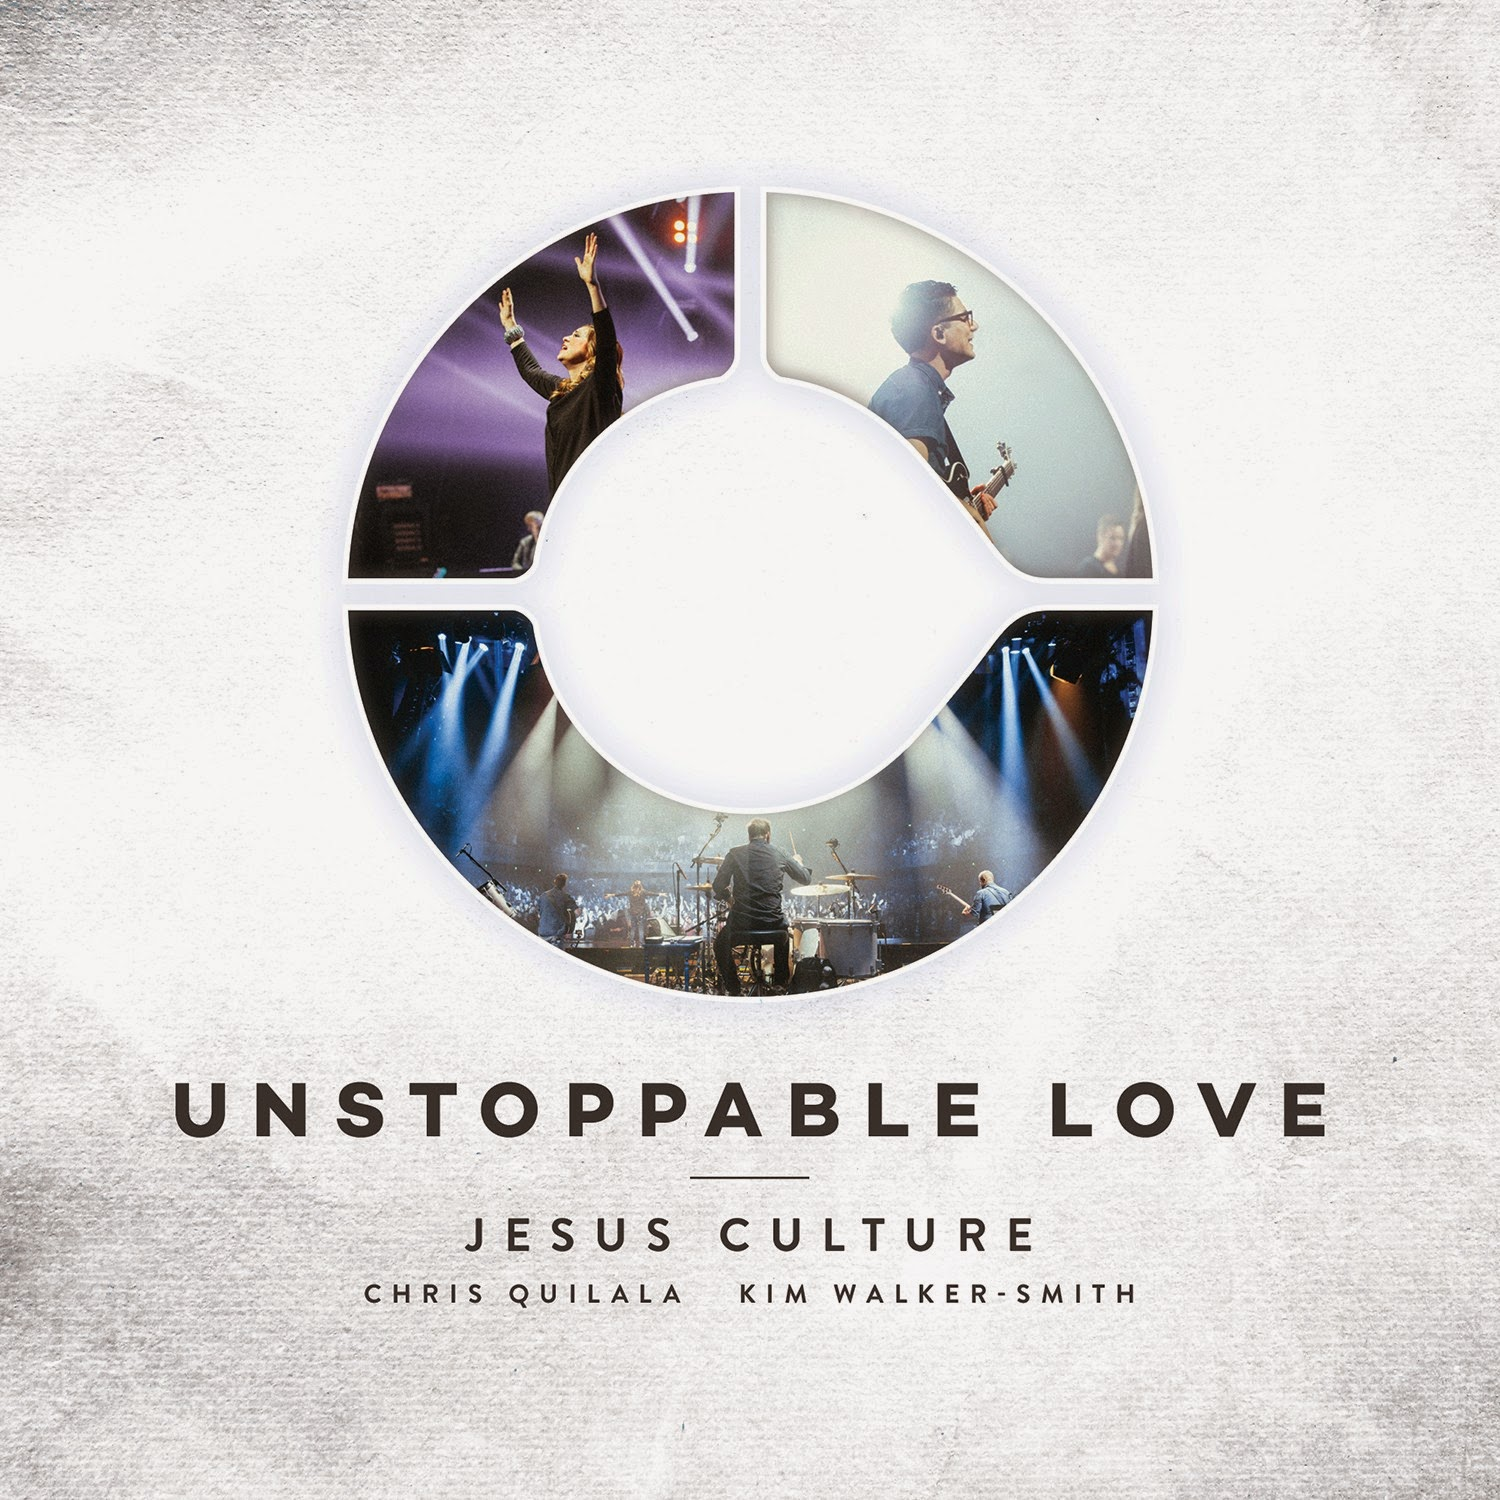 Download Jesus Culture Unstoppable Love 2014 itunes cover copy